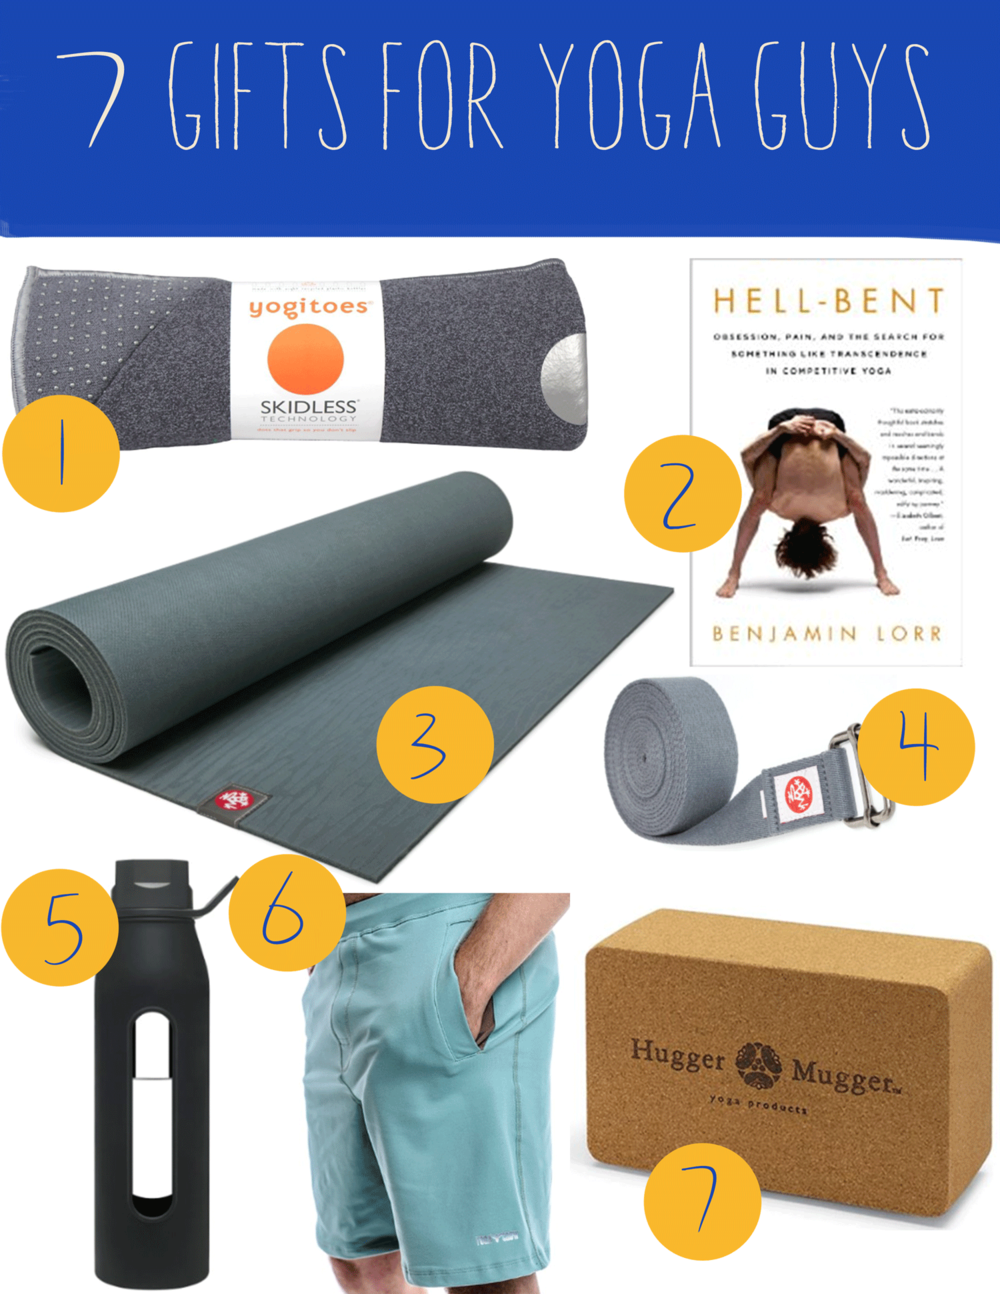 Yoga gifts for guys